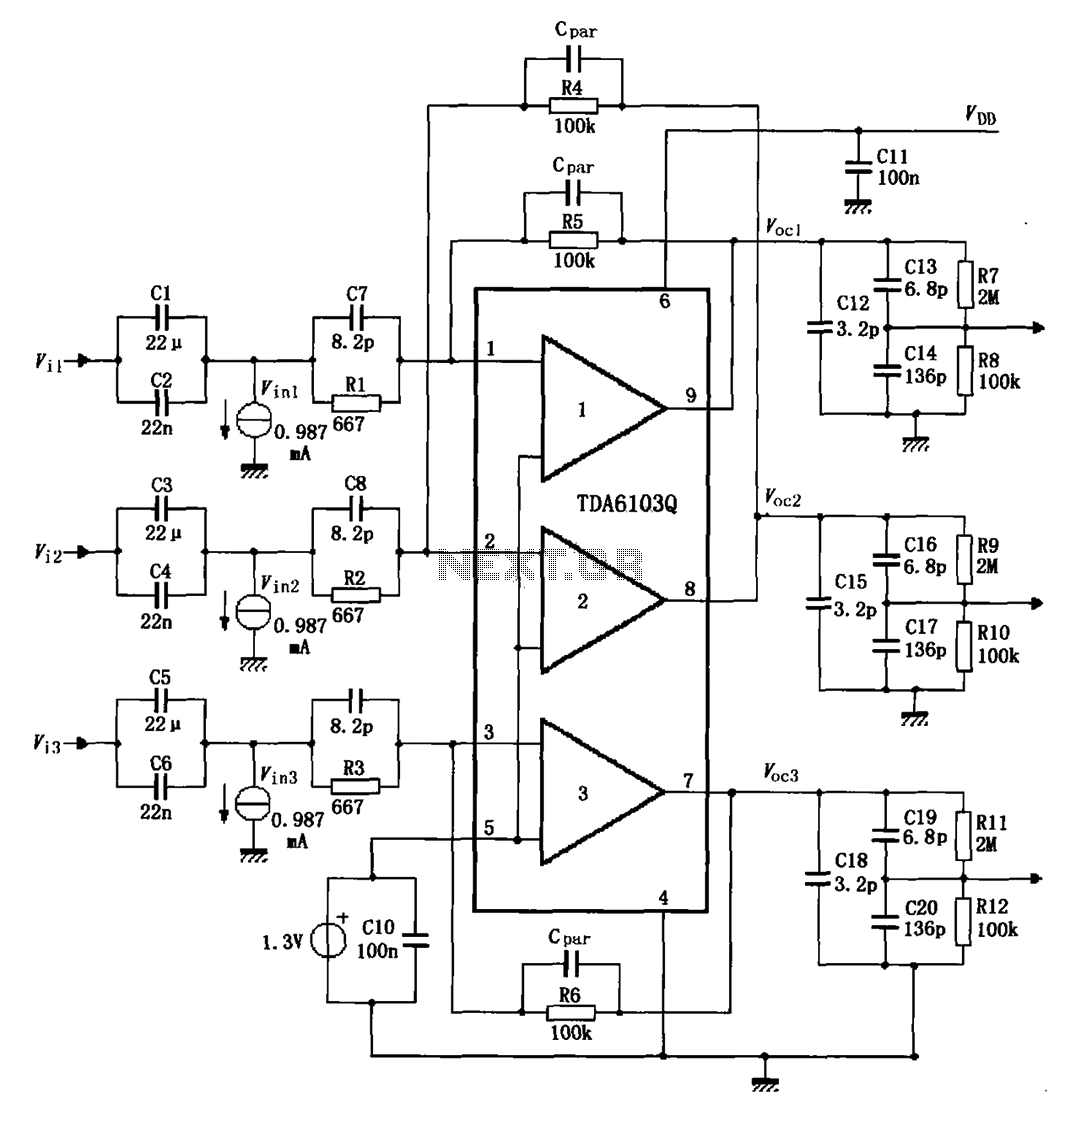 TDA6103Q having a feedback factor of the test circuit